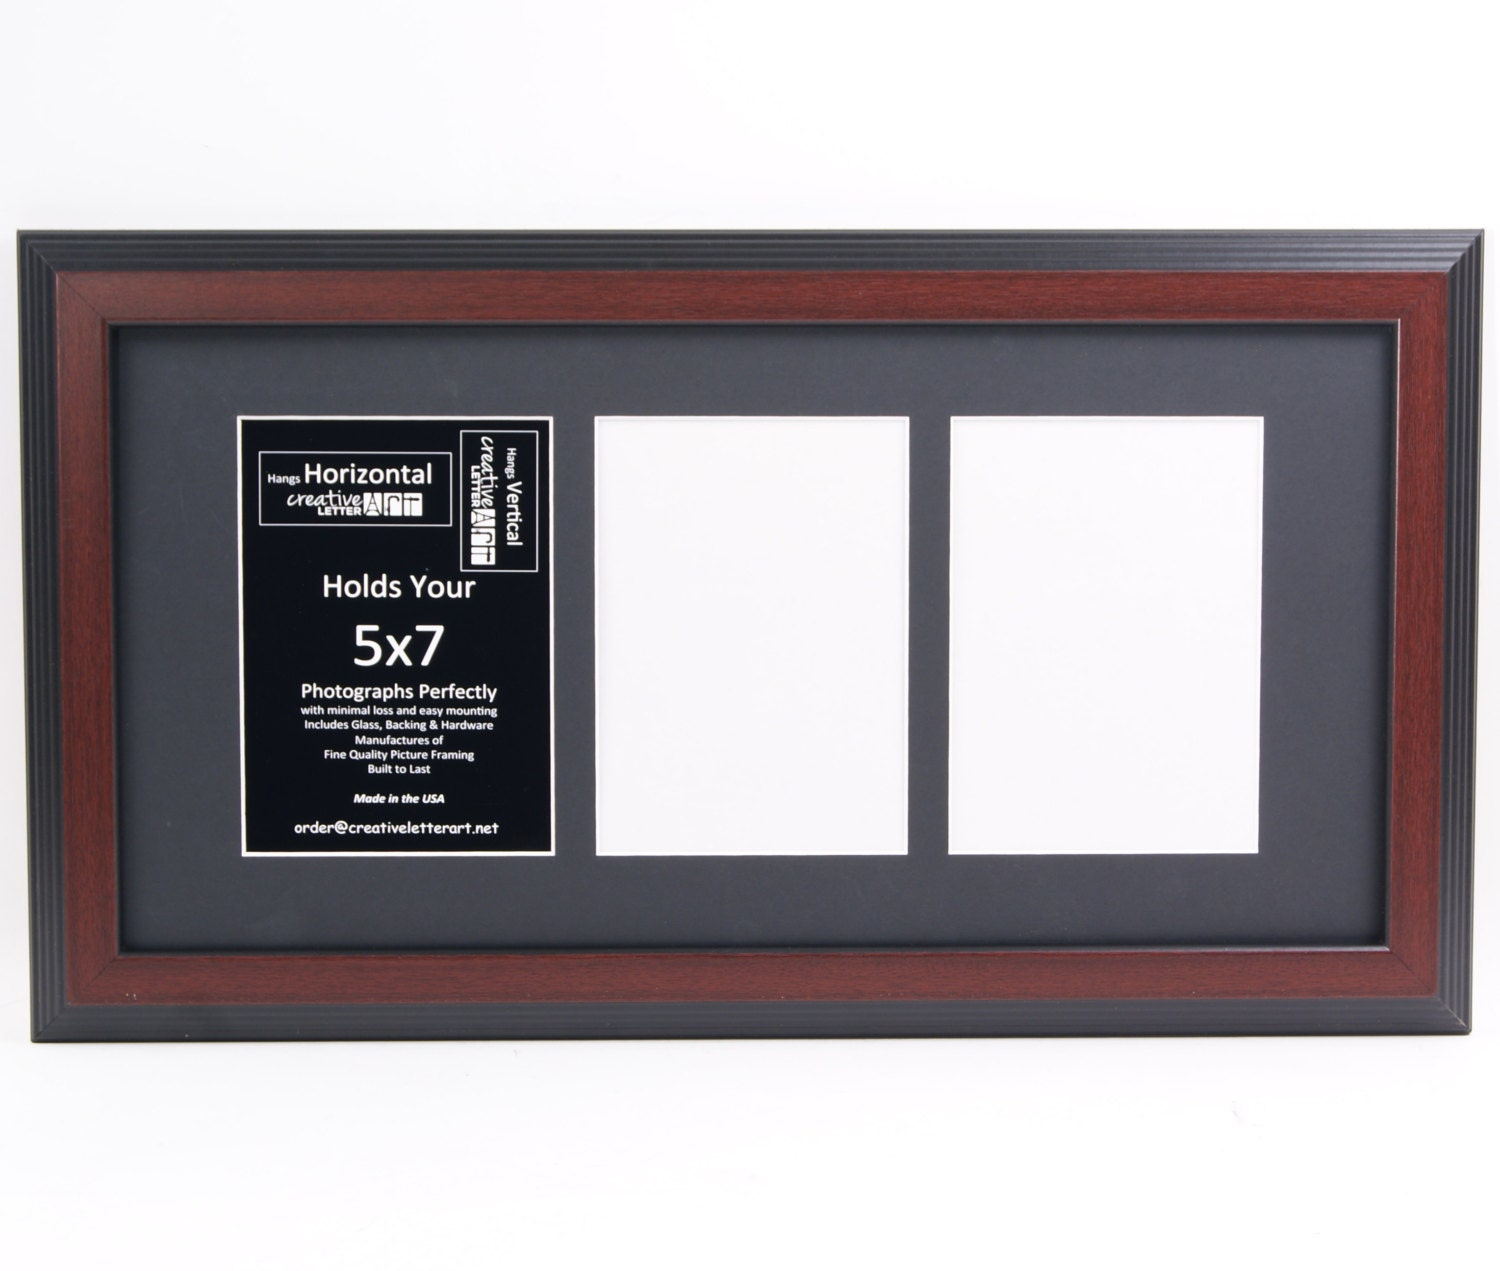 5x7 mahogany picture frames w multi 3 4 5 6 7 opening collage mat 5x7 mahogany picture frames w multi 3 4 5 6 7 opening collage mat to hold 5x7 photographs for wedding name sign or alphabet photography jeuxipadfo Gallery